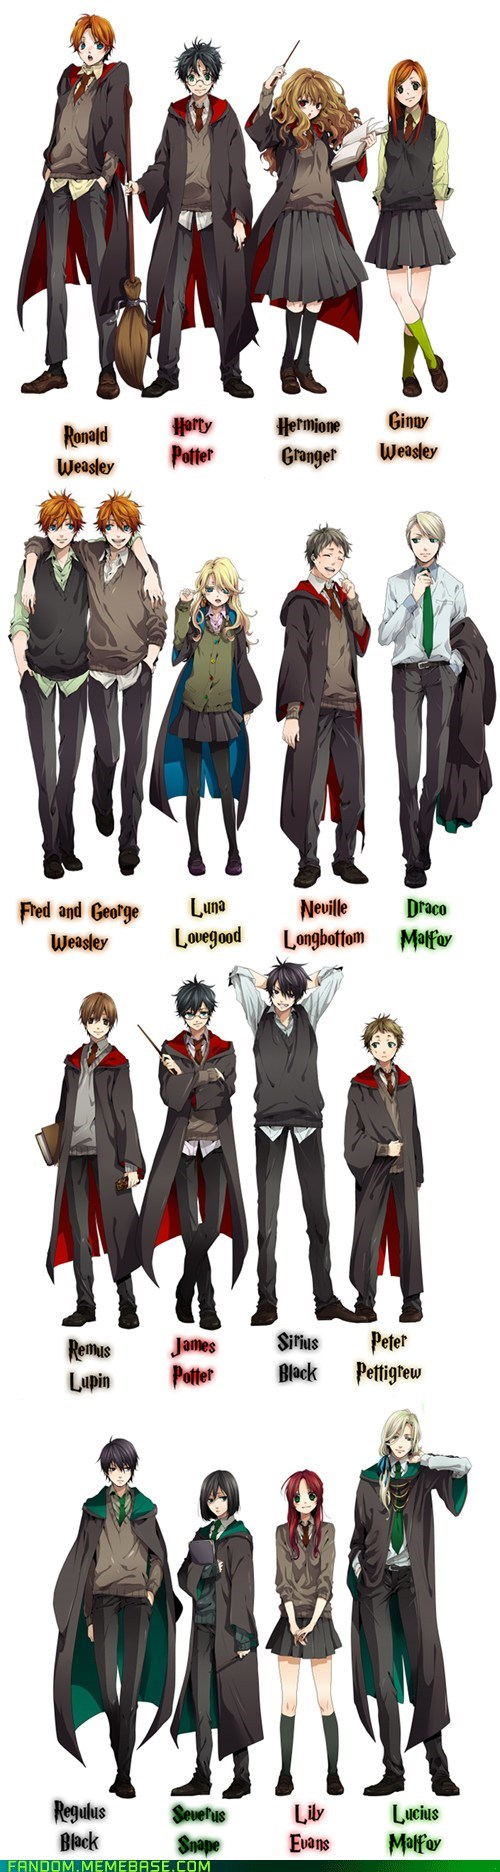 anime style best of week Fan Art Harry Potter weasleys